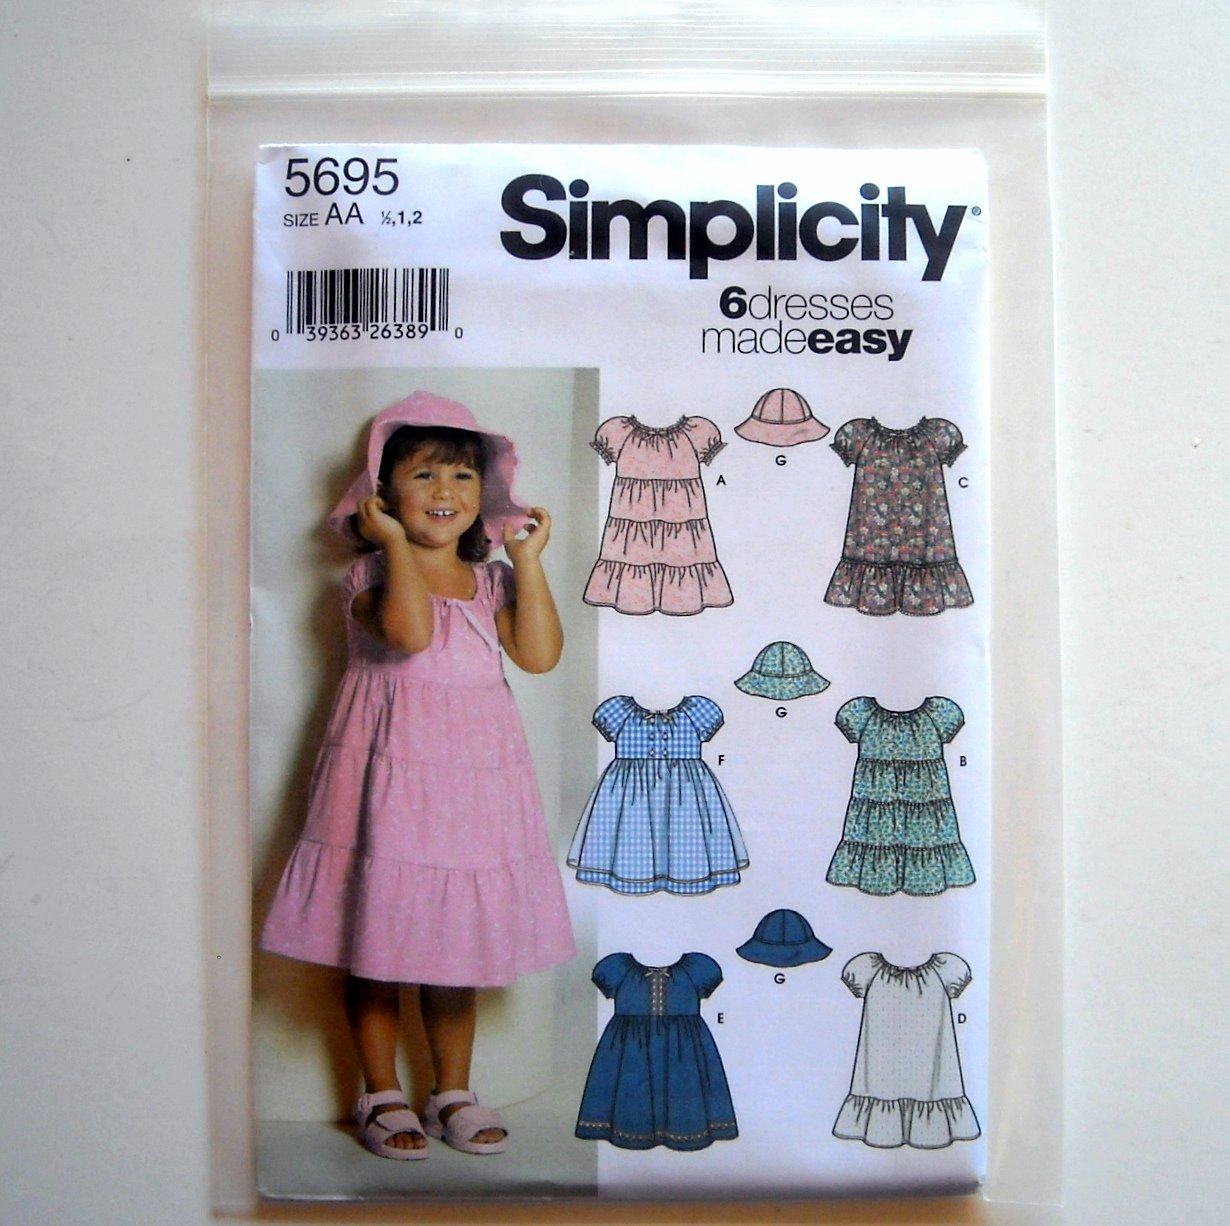 Toddlers Girls 6 Dresses Made Easy Size 1/2 - 2 Simplicity Pattern 5695